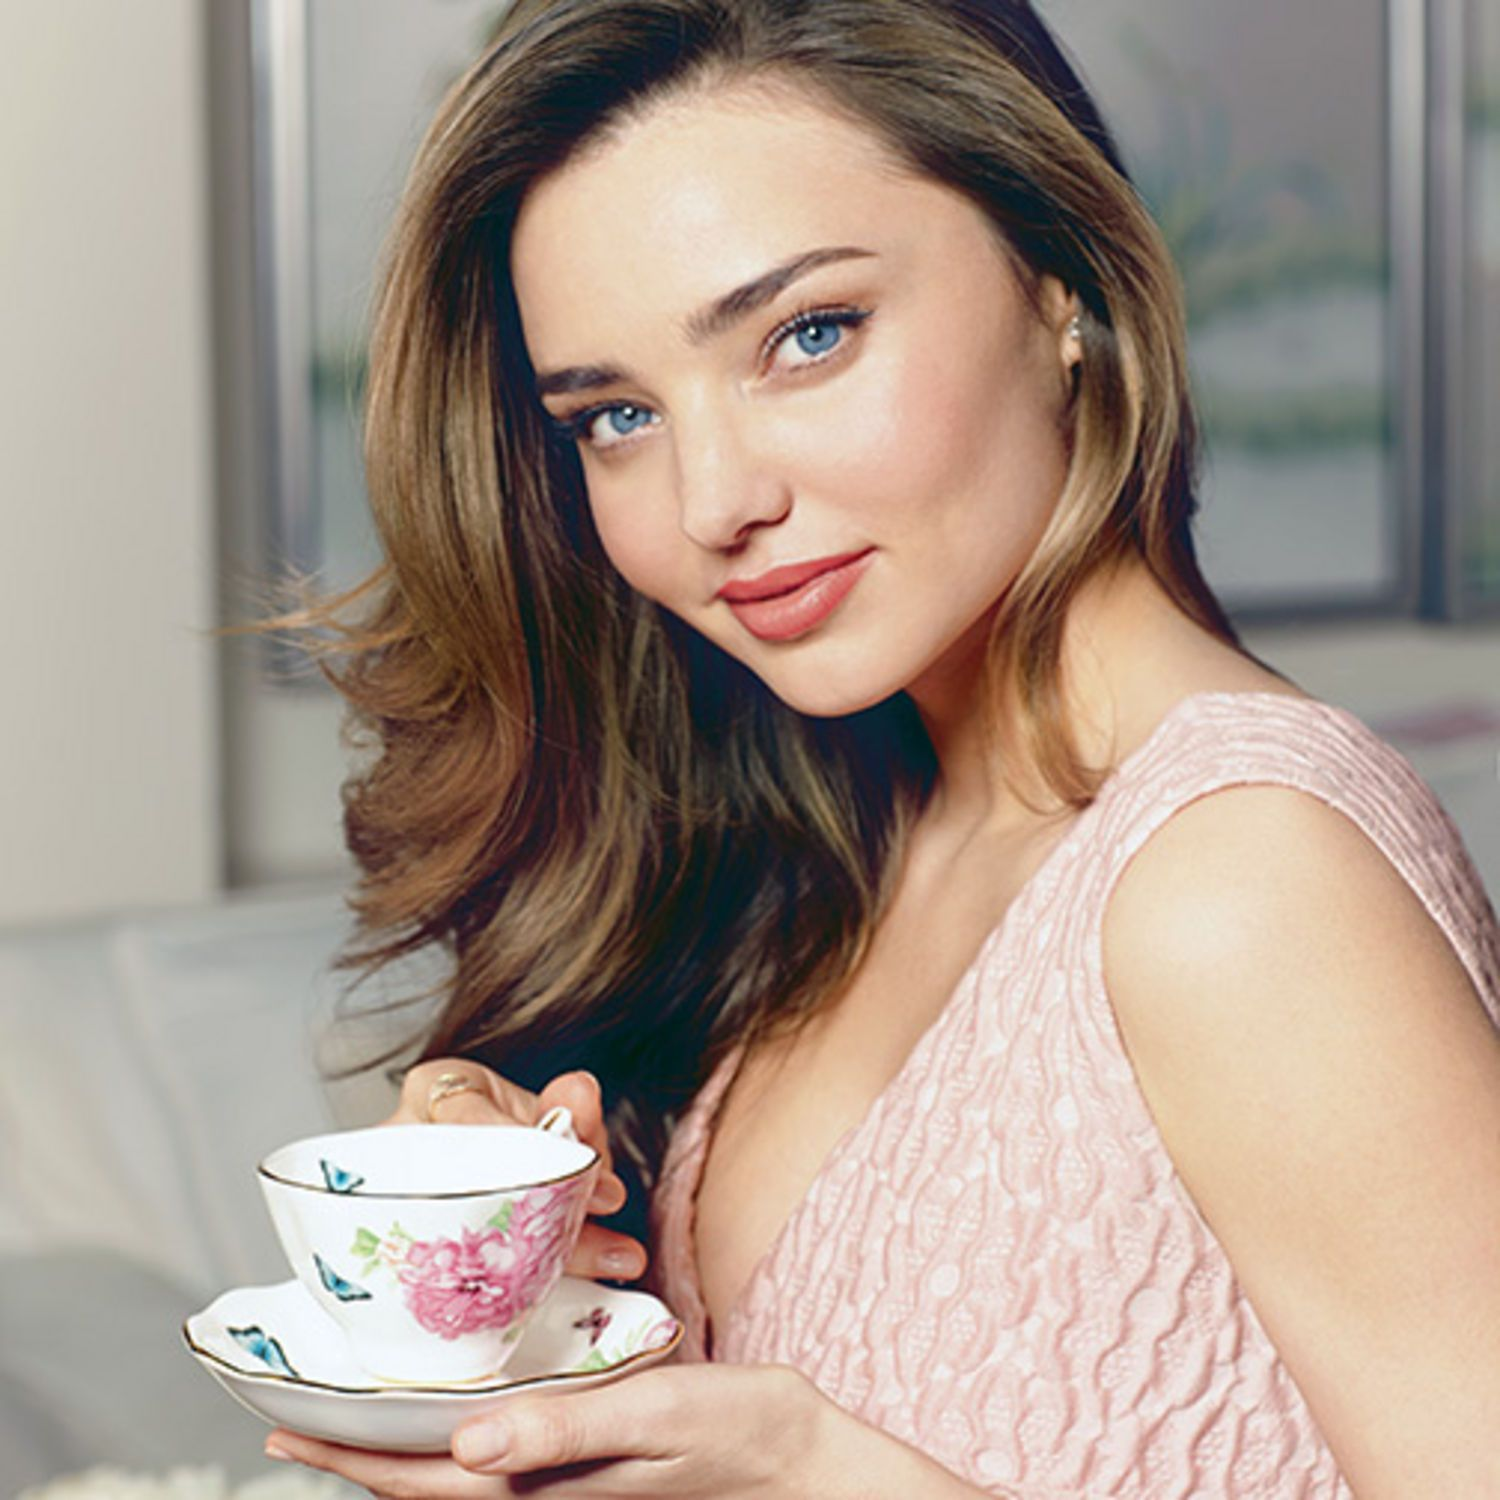 Pin by claire chavanon on m a k e u p pinterest miranda kerr